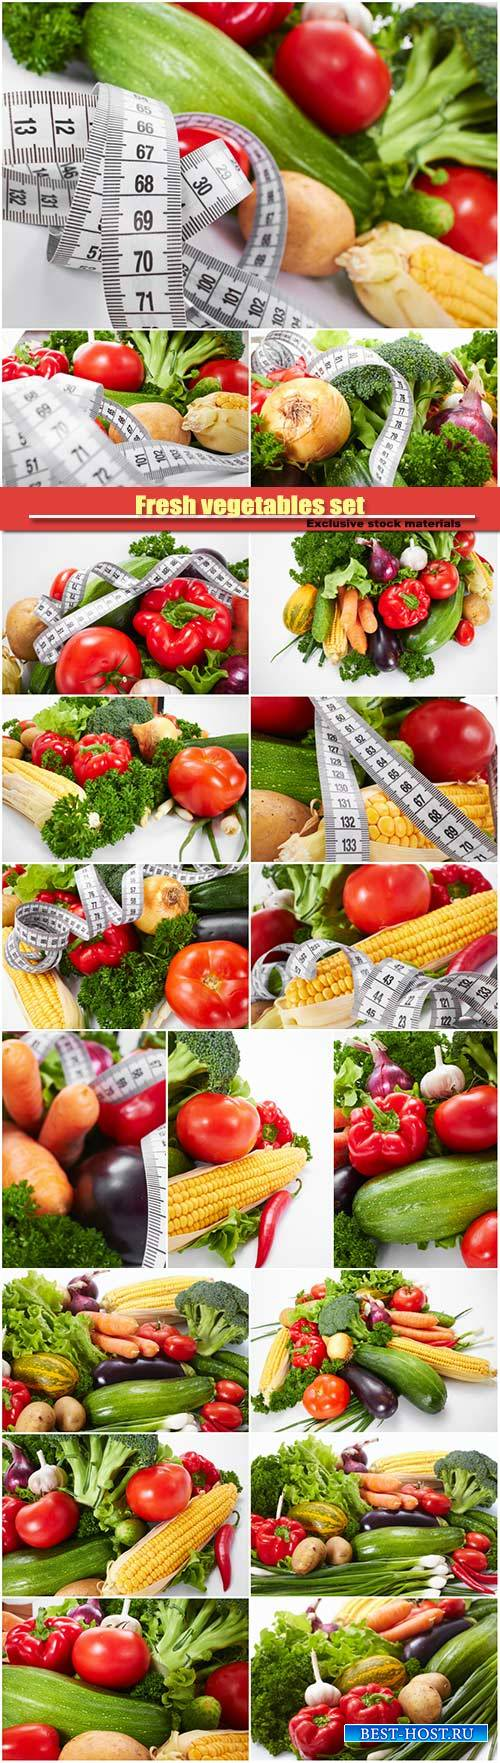 Fresh vegetables set